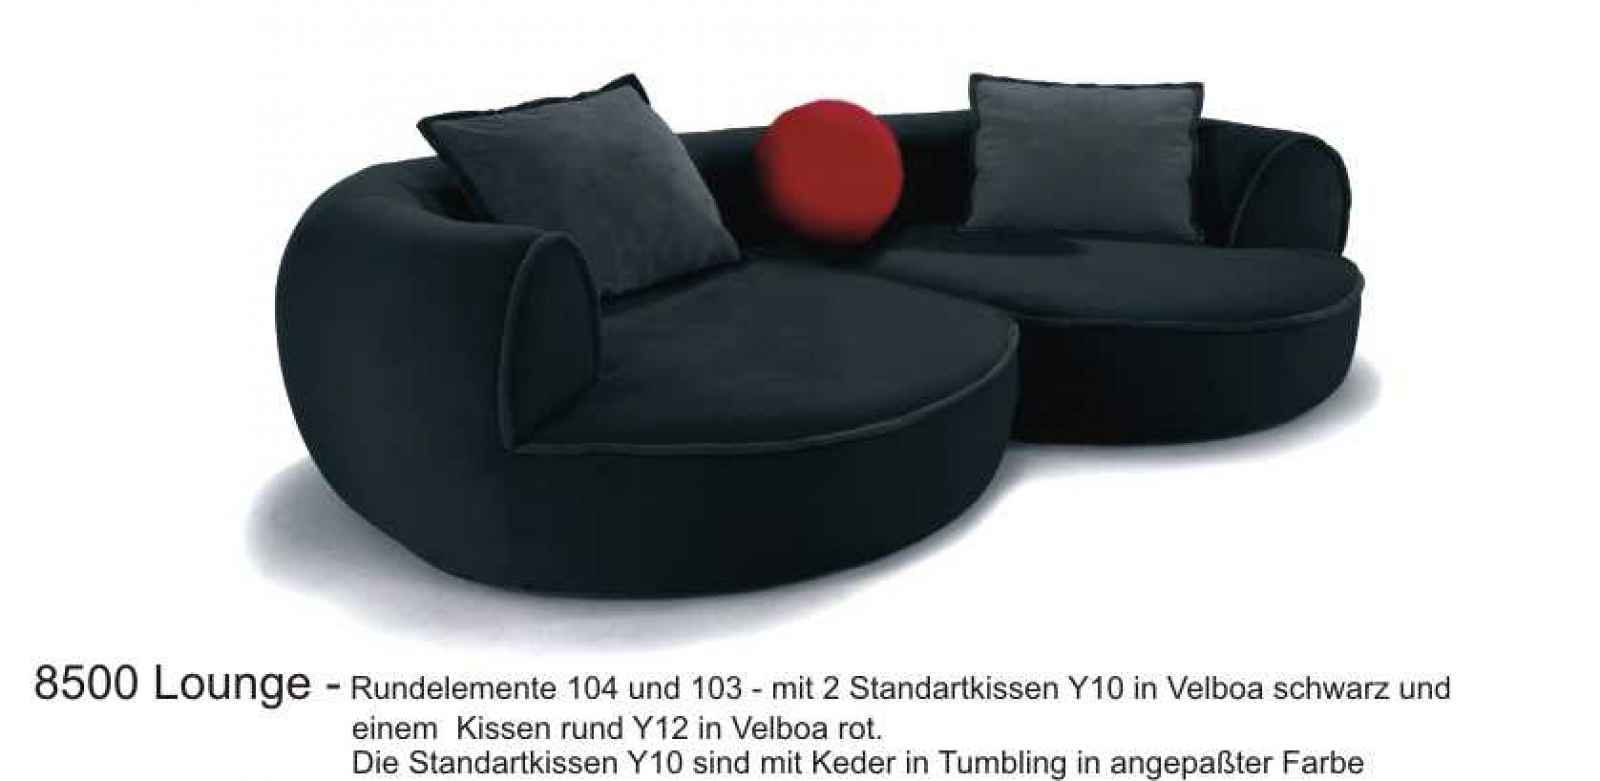 Lounge sofa rund  Stoffsofas in der Yoko Home-Lounge - the-lounge-company